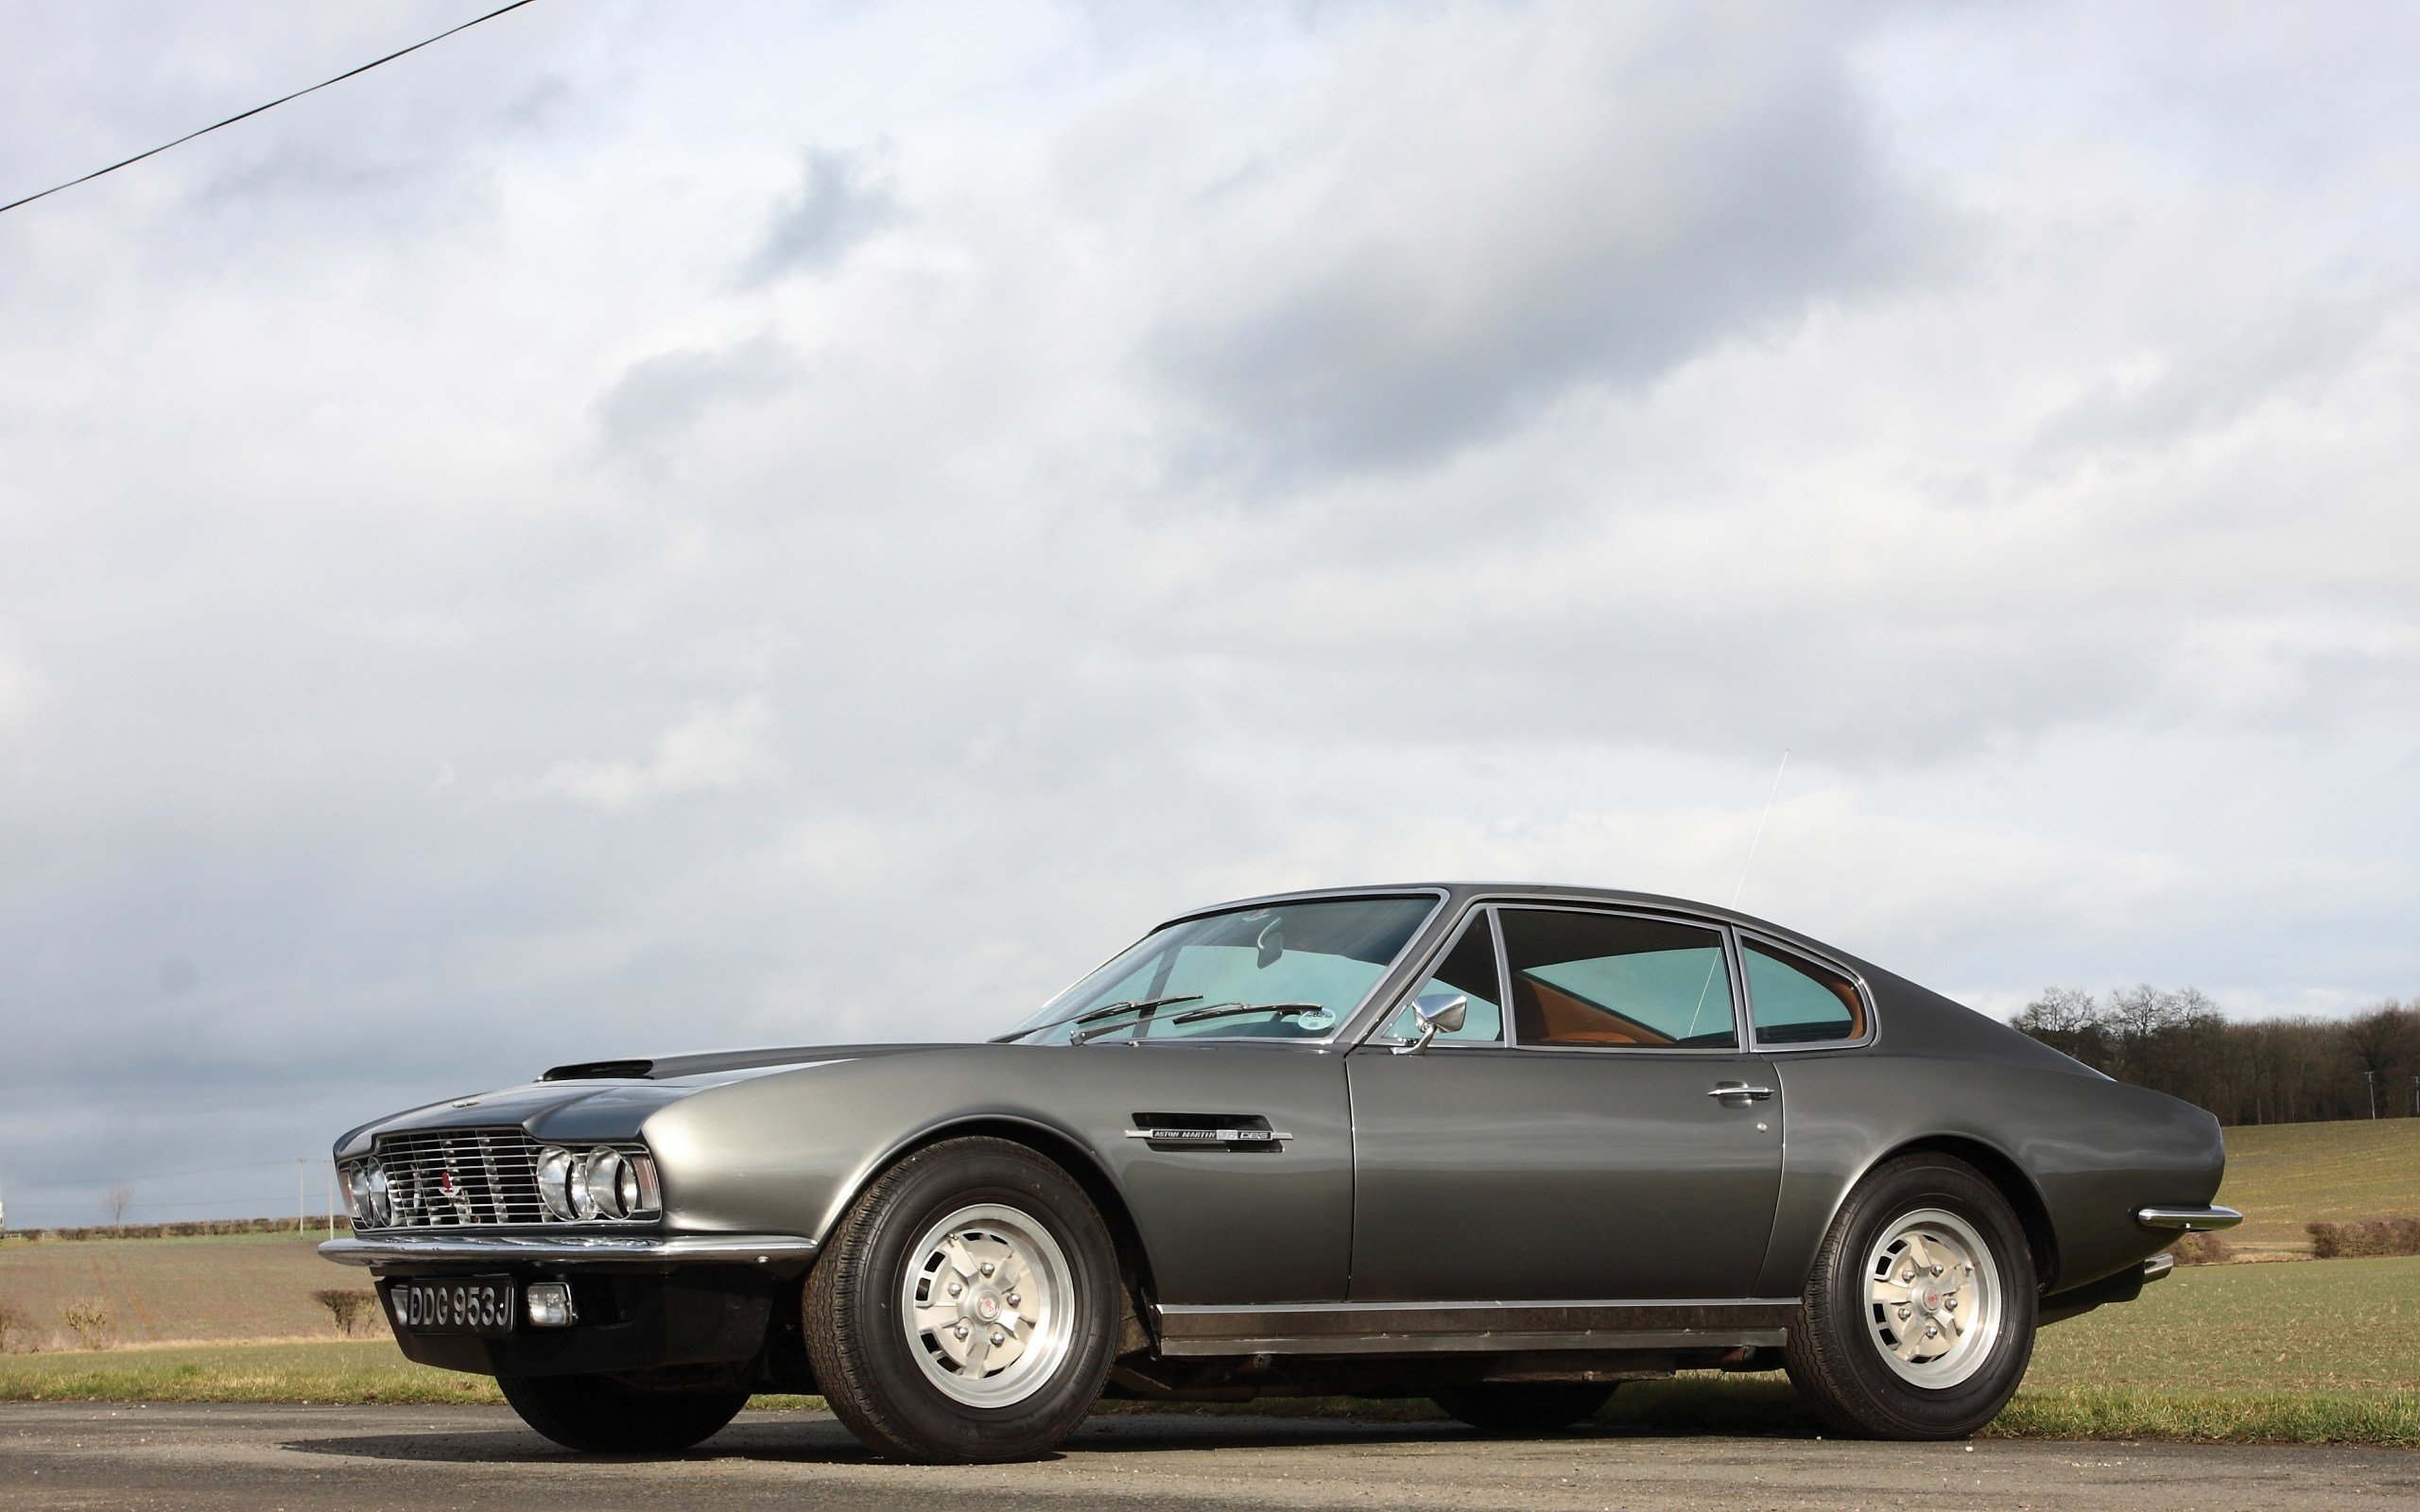 Latest Aston Martin Dbs Hd Wallpaper Background Image Free Download